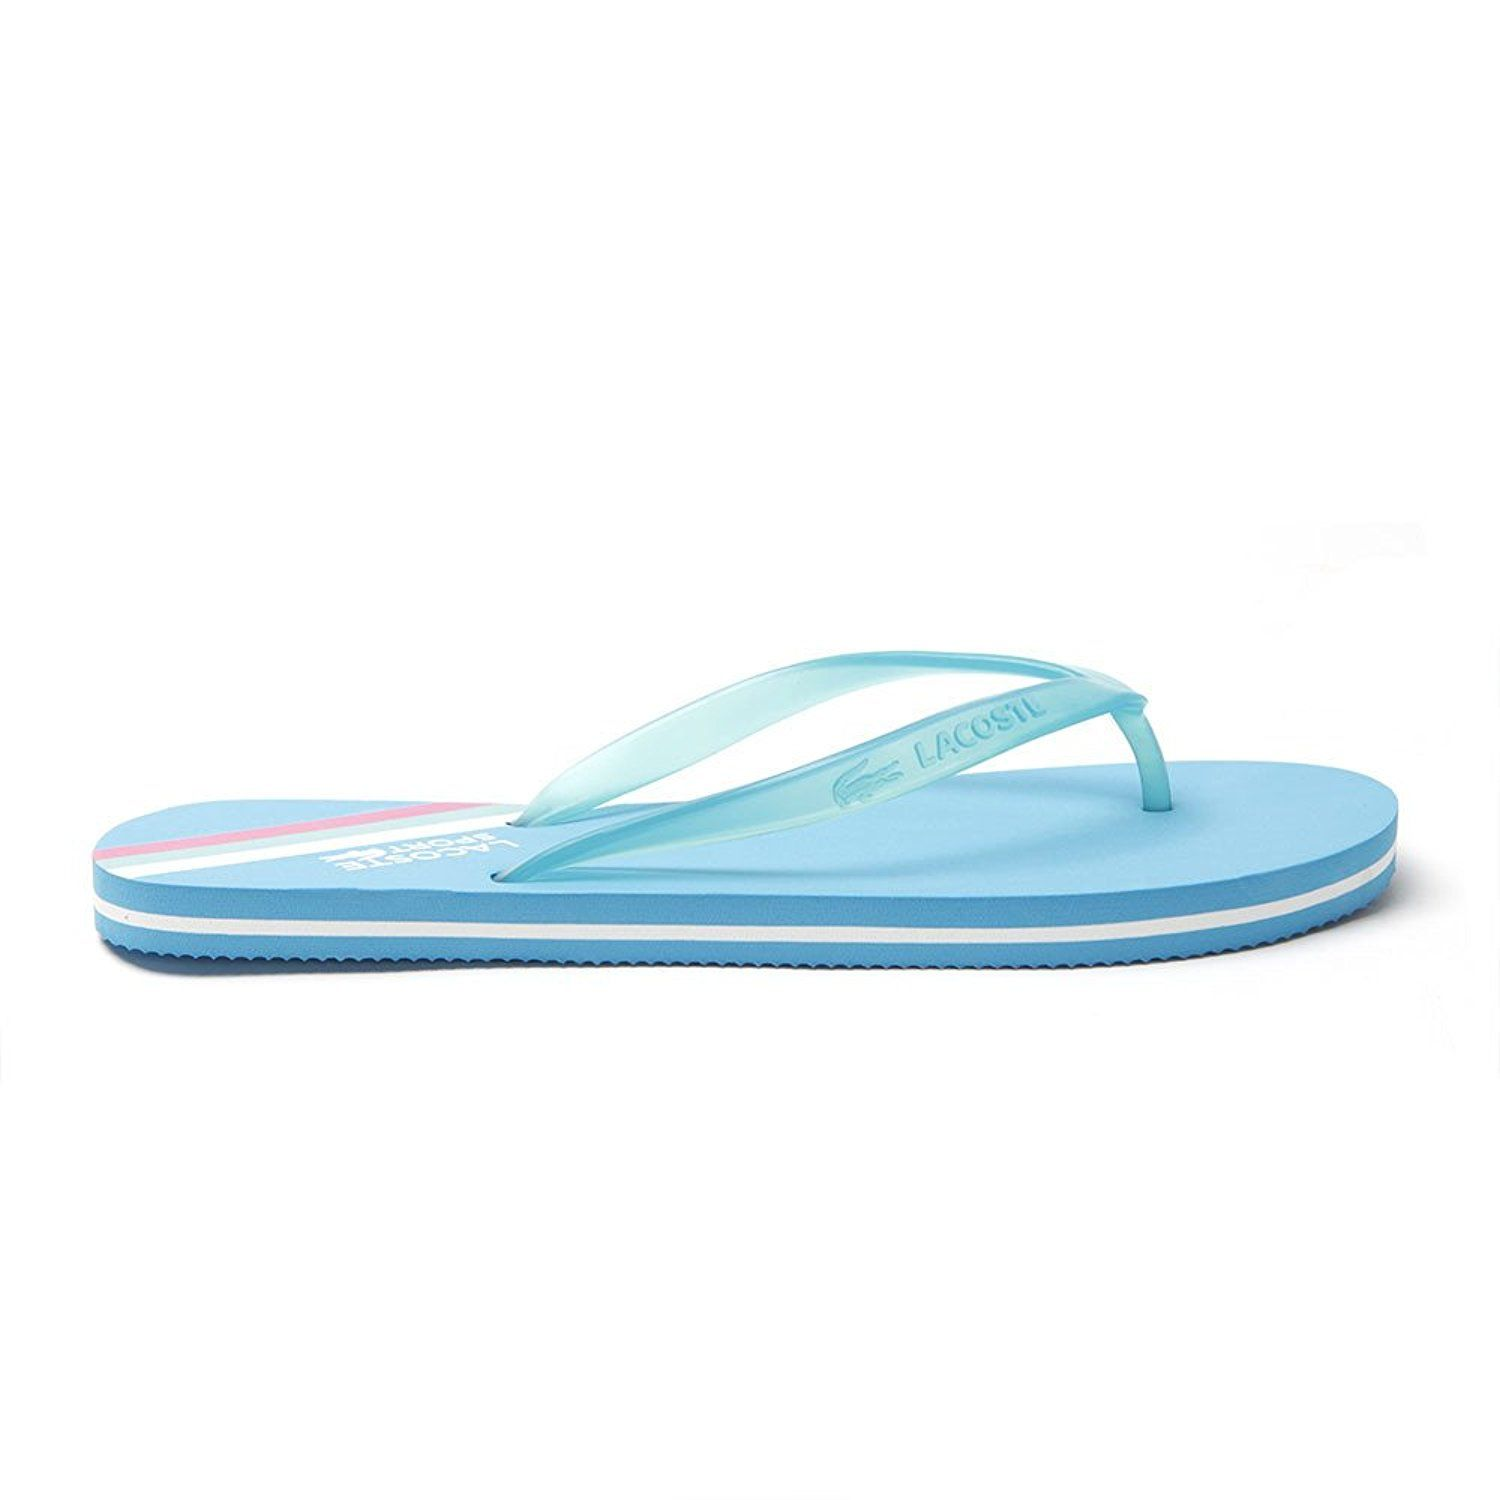 71078b830 Lacoste ancelle flip flops new ladies shoes be sure to check out jpg  1500x1500 Lacoste ladies